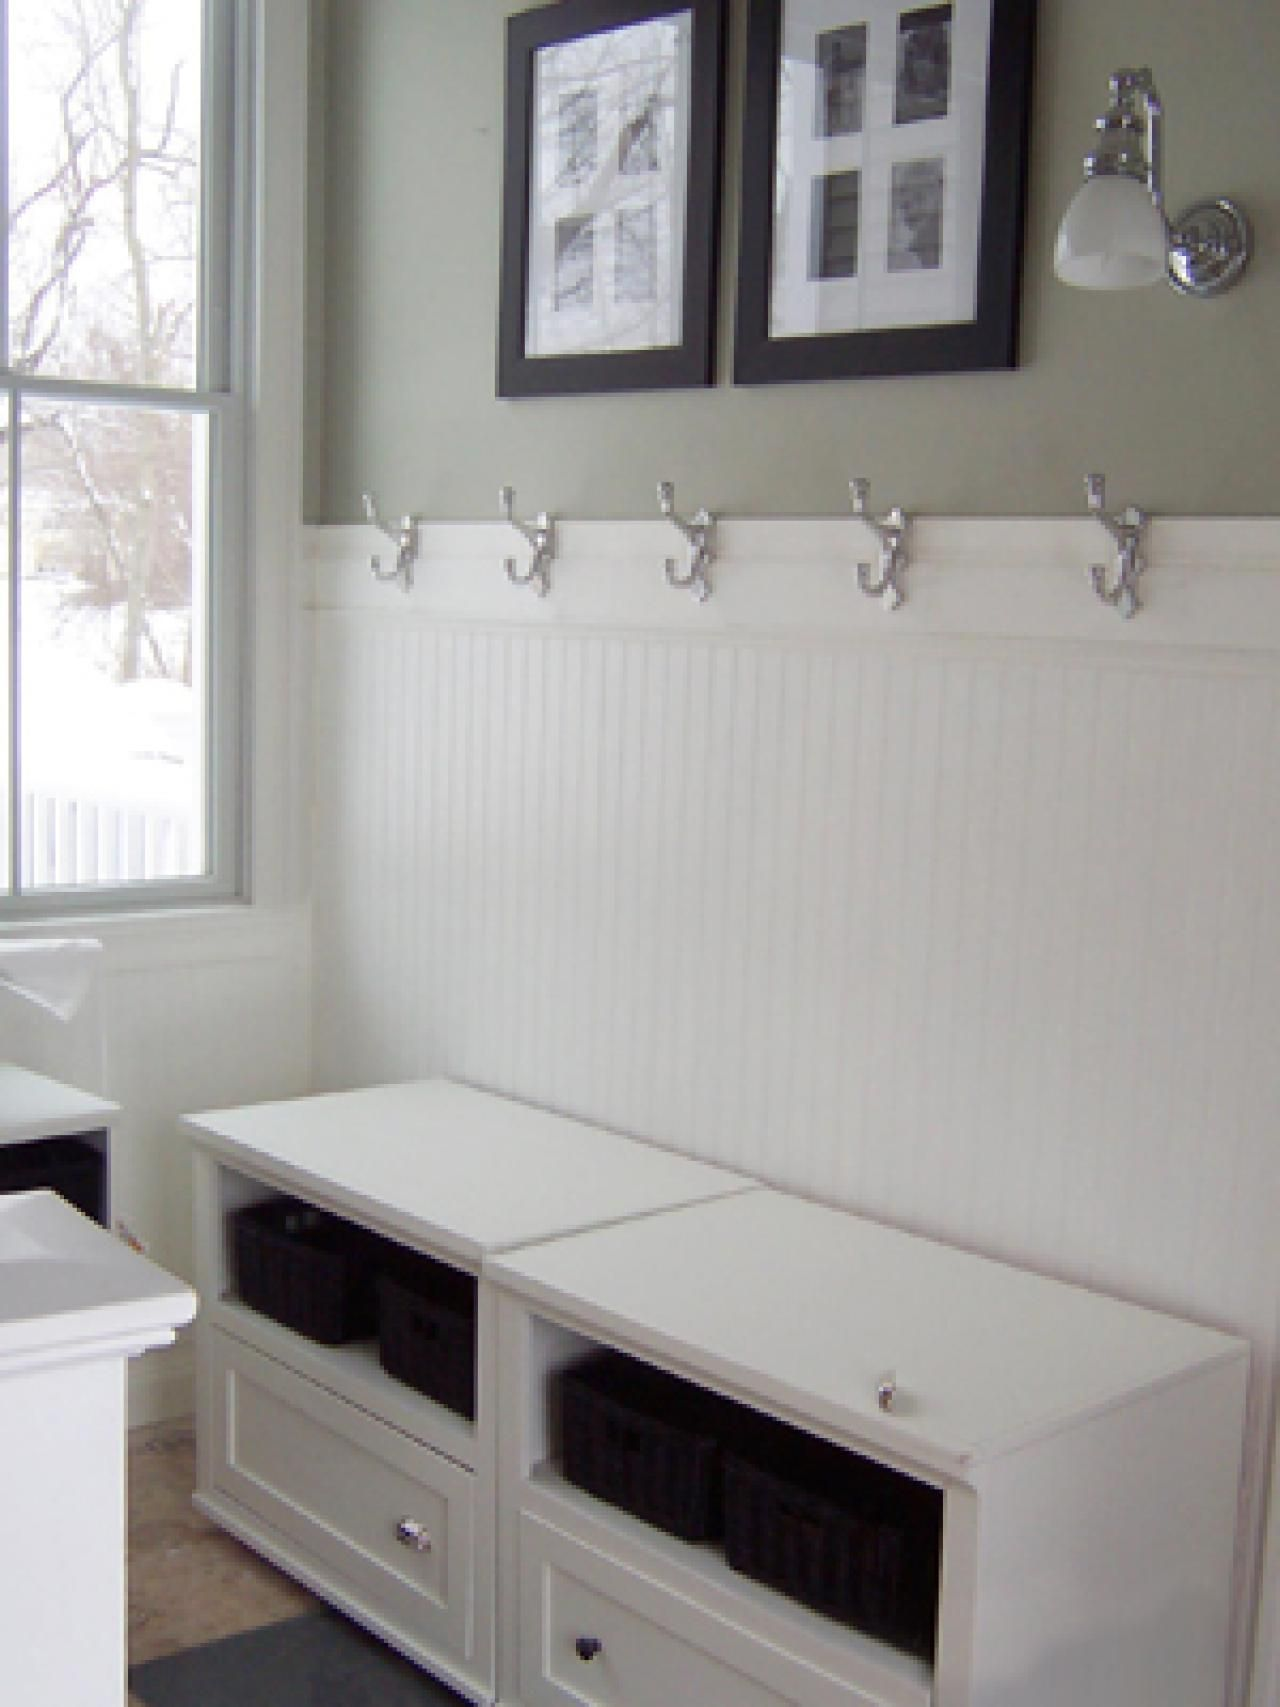 10 Rooms Featuring Beadboard Paneling: How To Install Wainscoting To A Wall